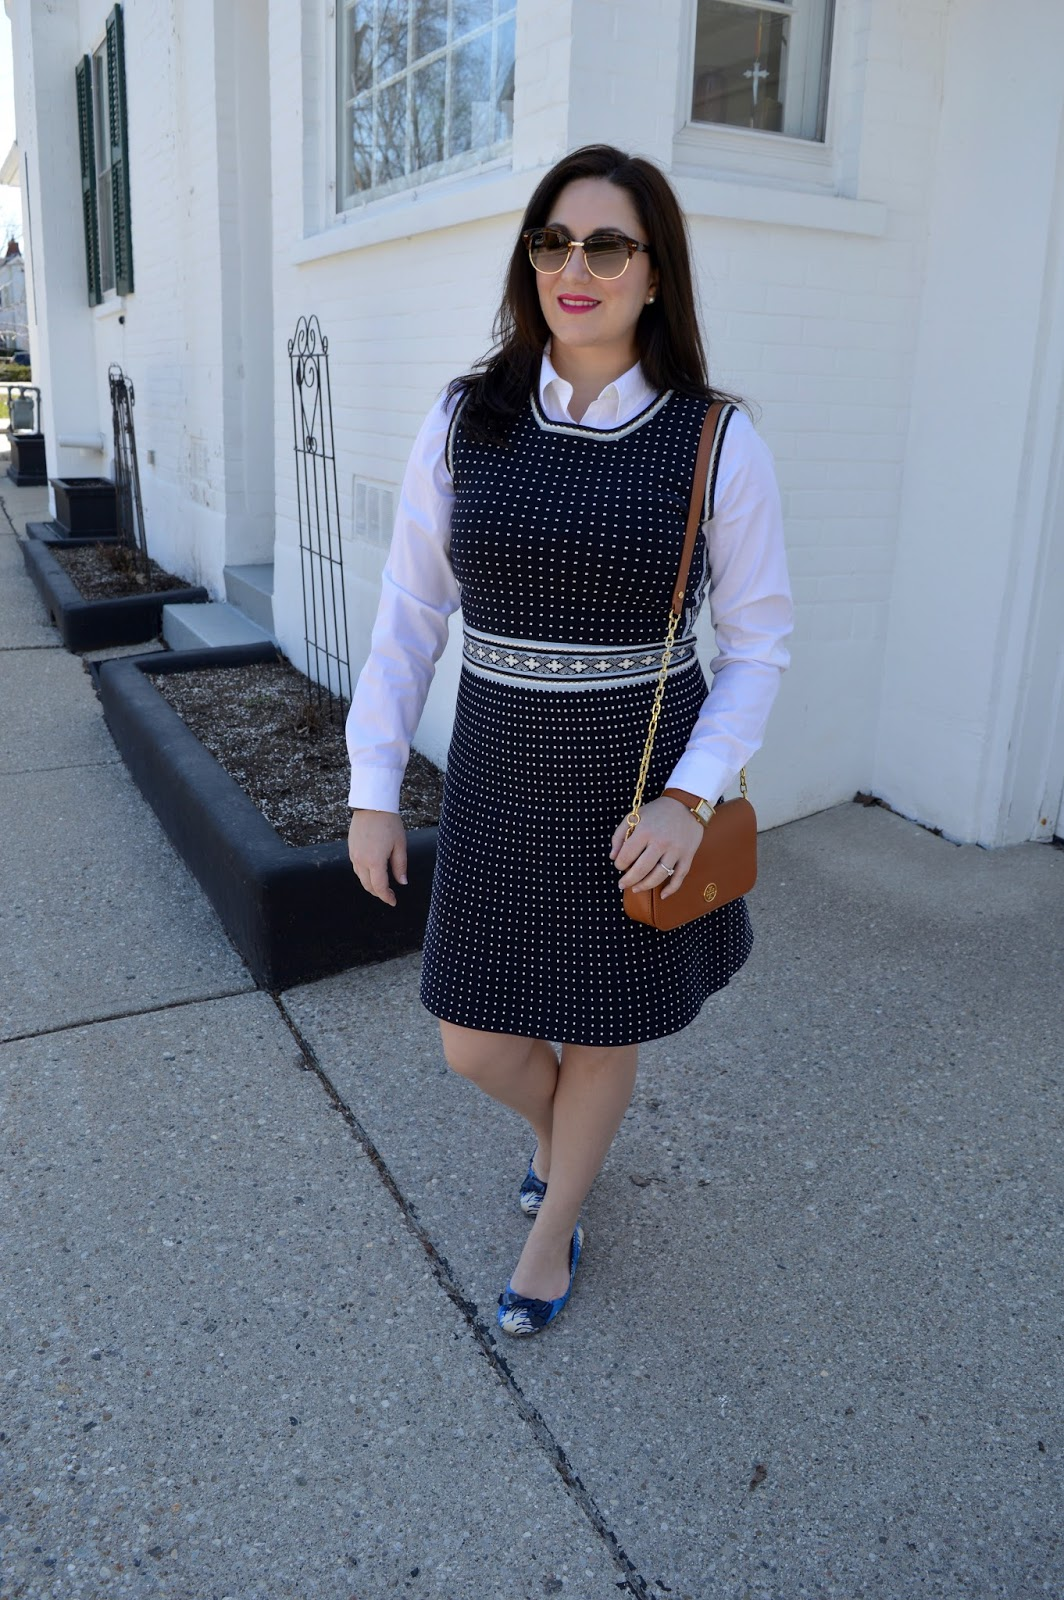 Navy dress, white blouse